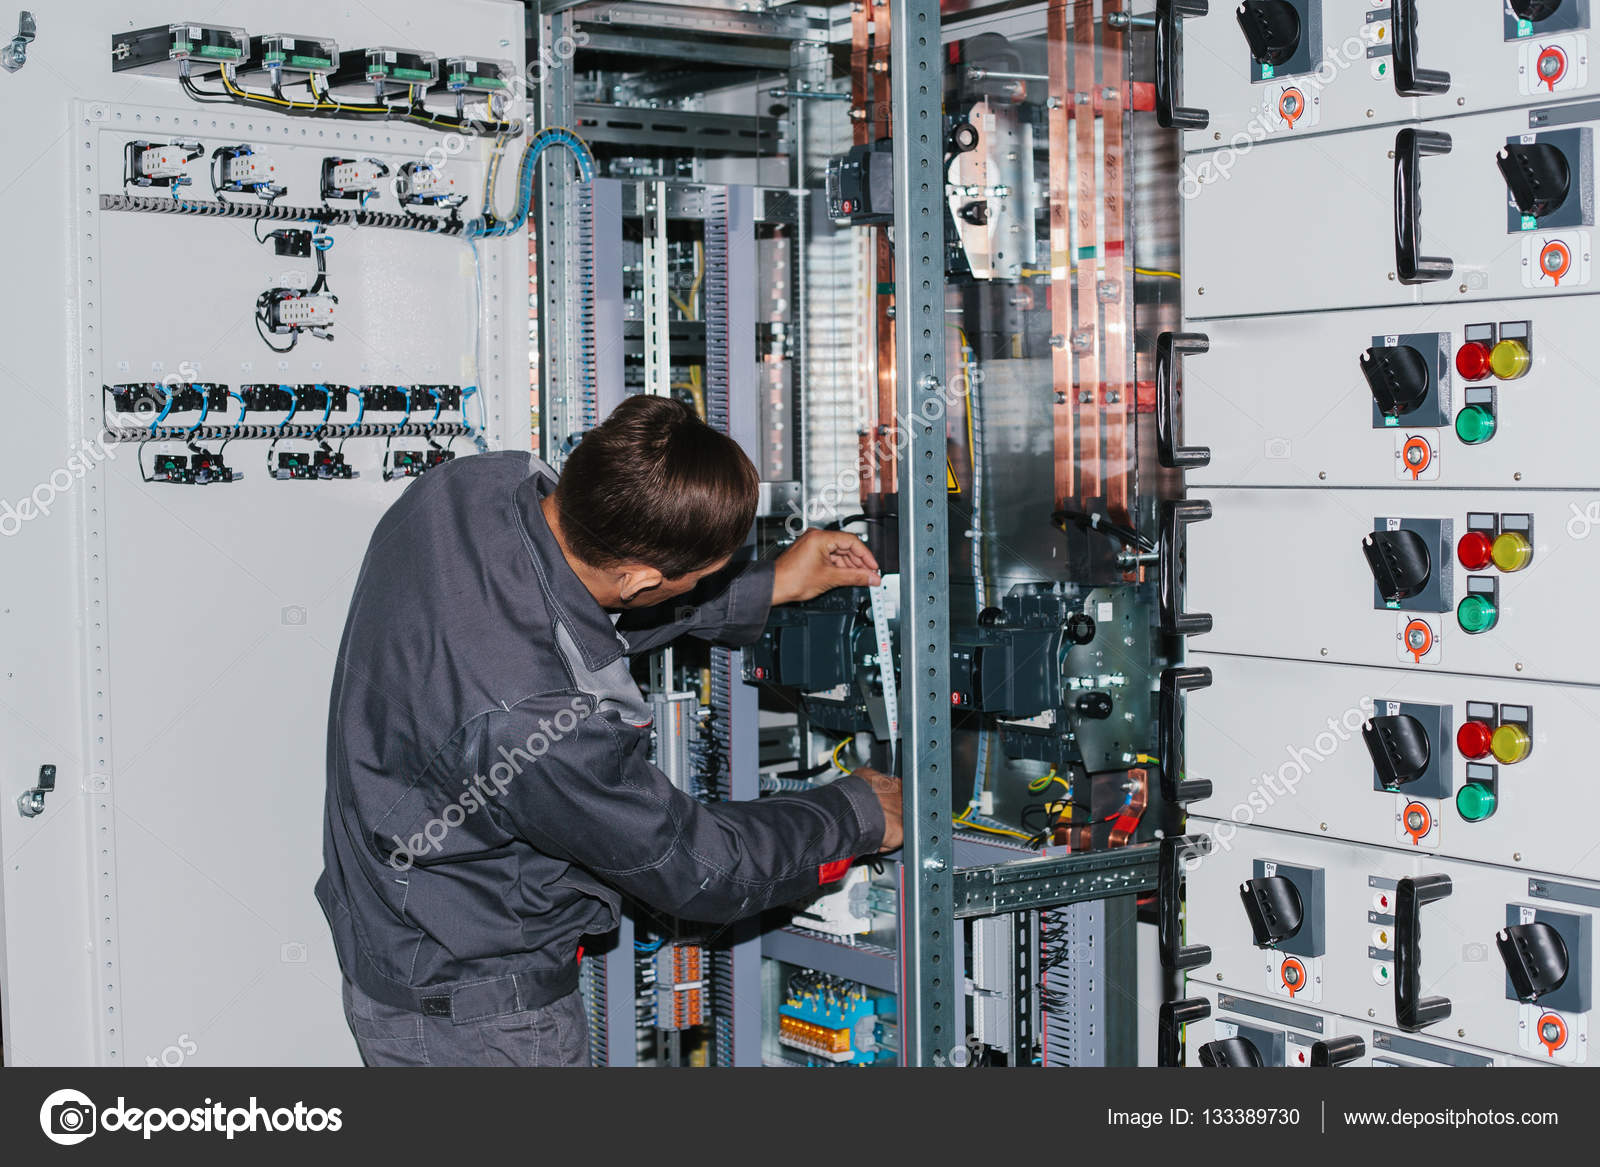 Electrical Low Voltage Power Supply Excellent Wiring Powersupplycircuitslowvoltage Powersupplycircuit Circuit Electrician Near The Cabinet Uninterrupted Rh Depositphotos Com Access Card